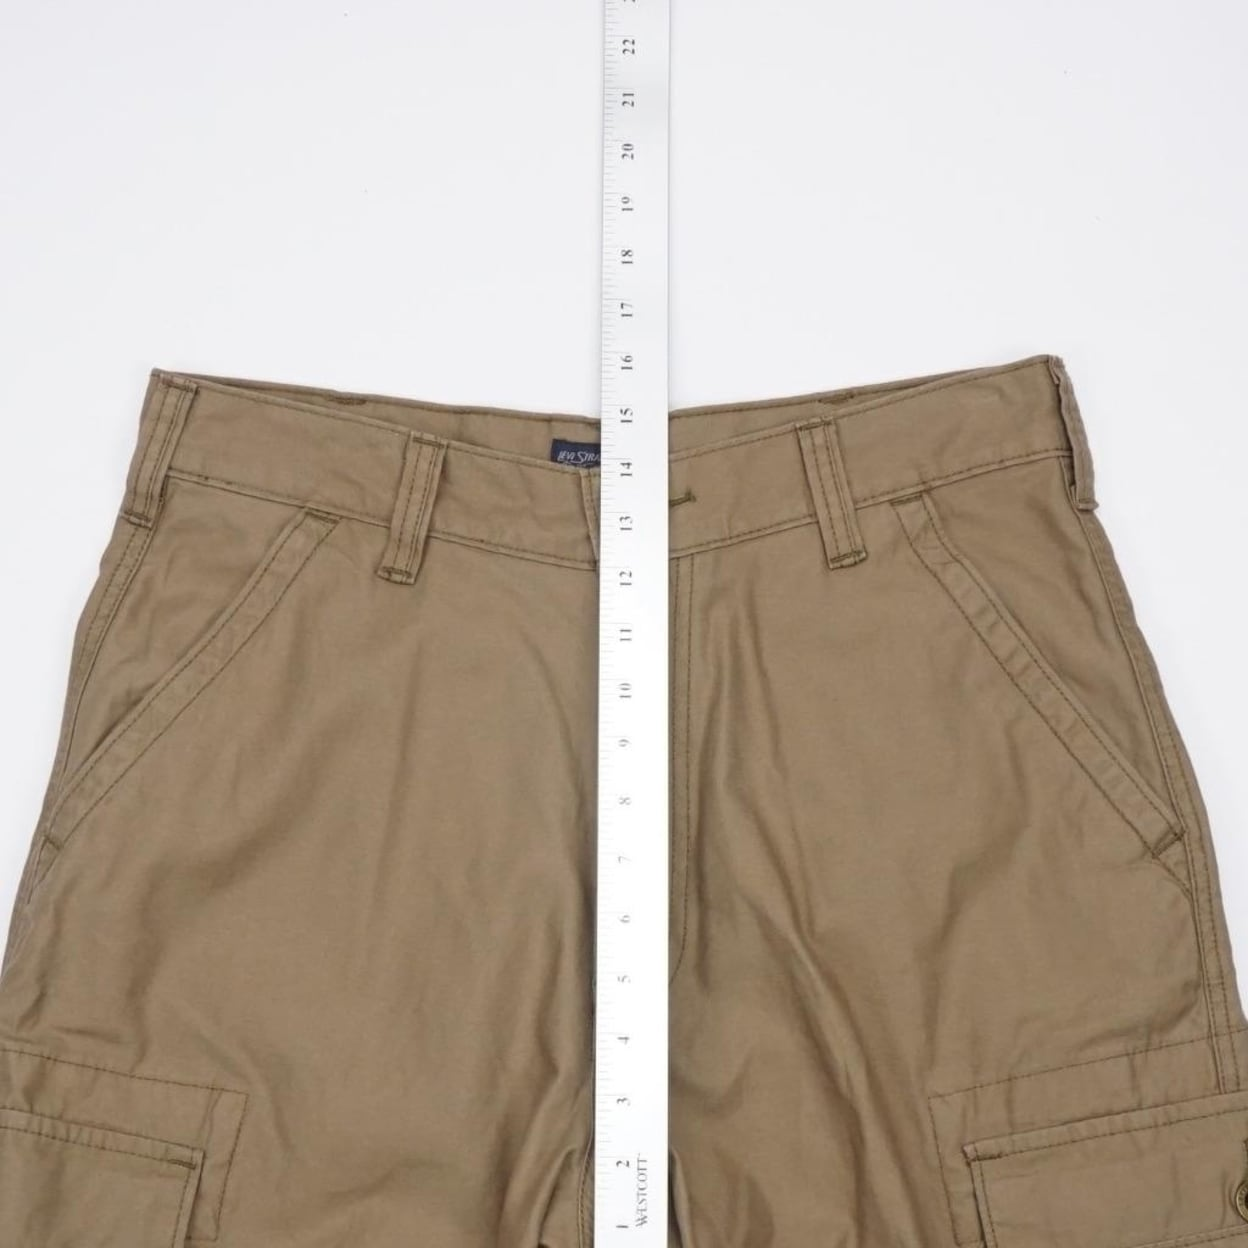 0bde48ce Shop LEVI STRAUSS Two Horse Cargo Shorts Brown Mens 32x11 - Free Shipping  On Orders Over $45 - Overstock - 23040198